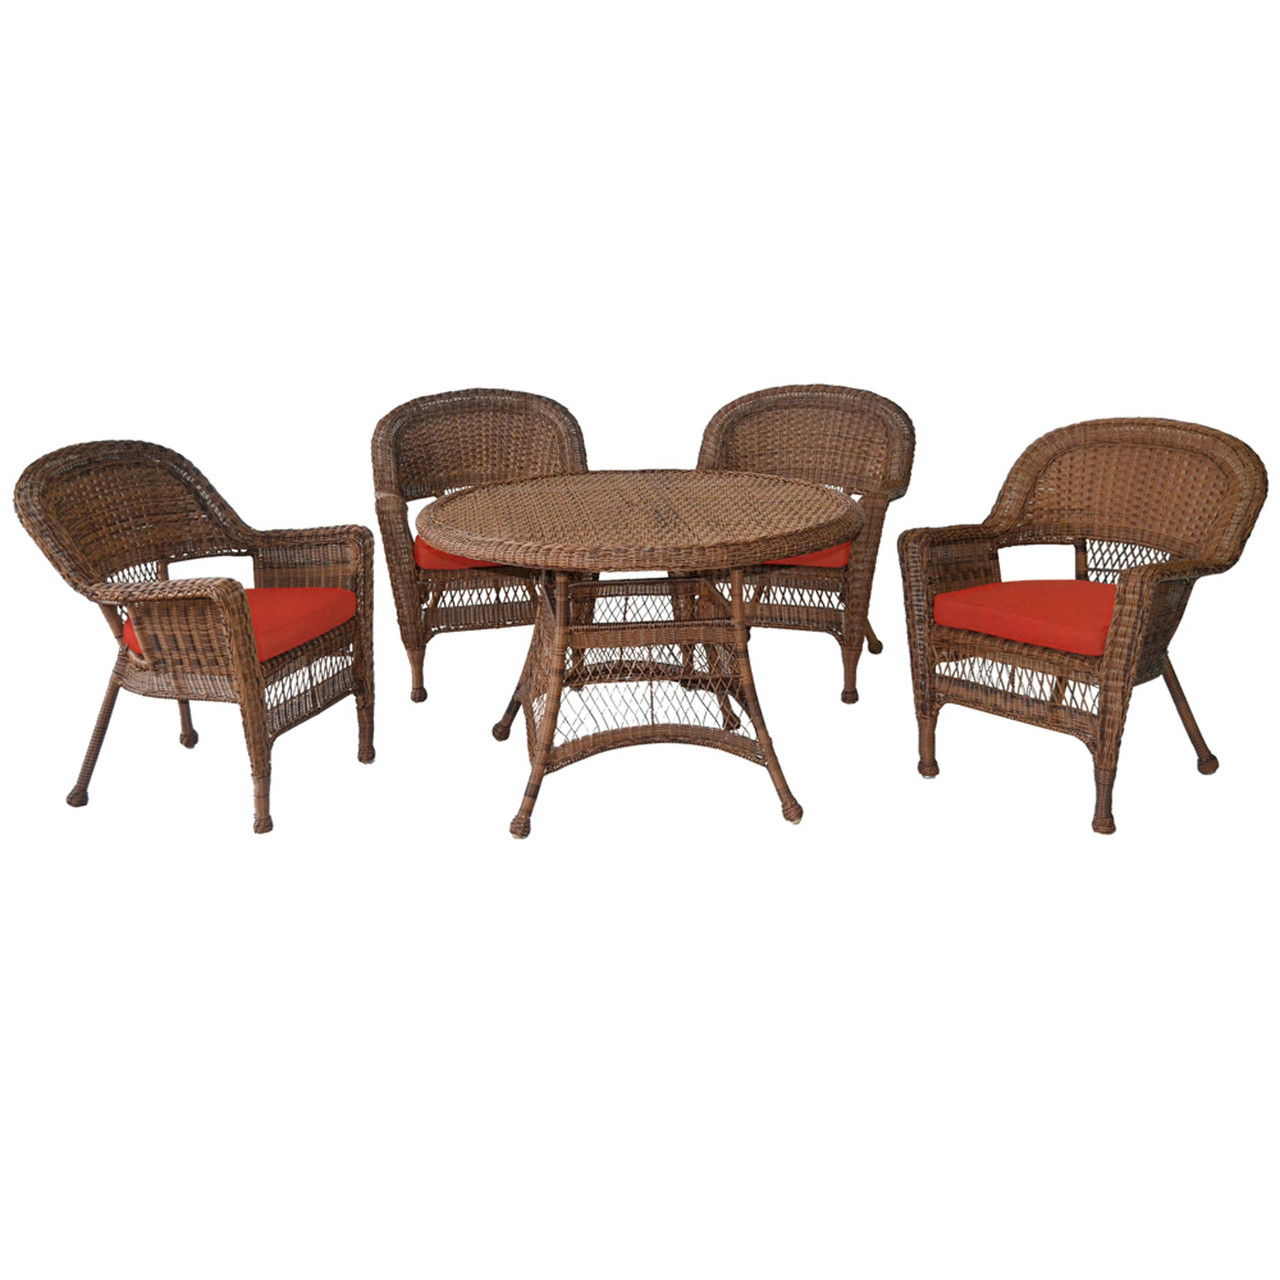 5-piece Honey Resin Wicker Chair & Table Patio Dining